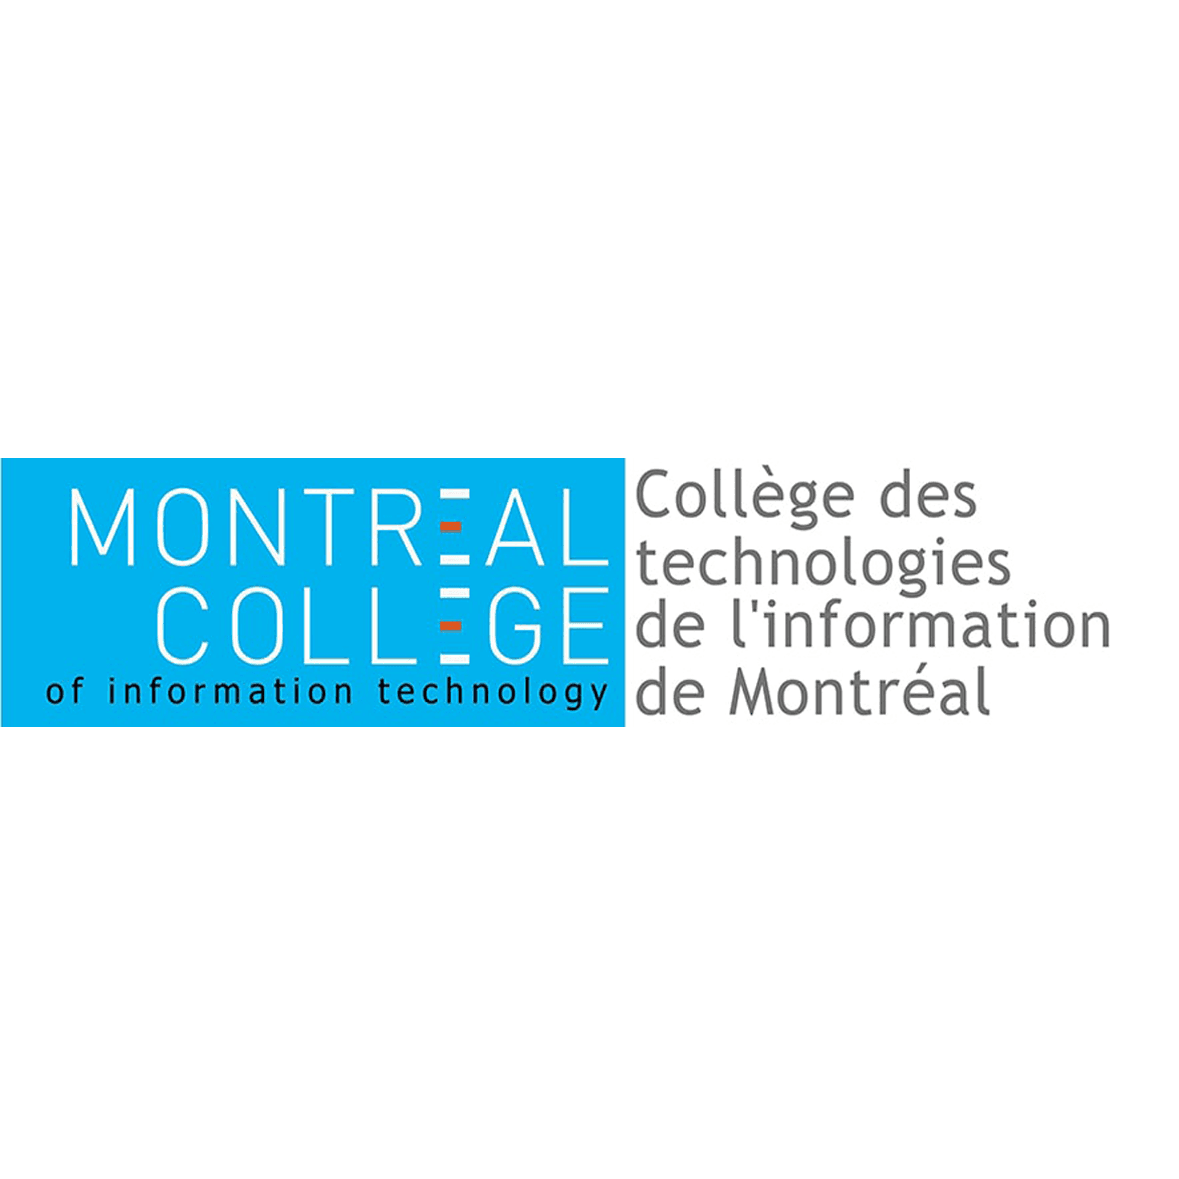 MONTREAL COLLEGE OF INFORMATION TECHNOLOGY